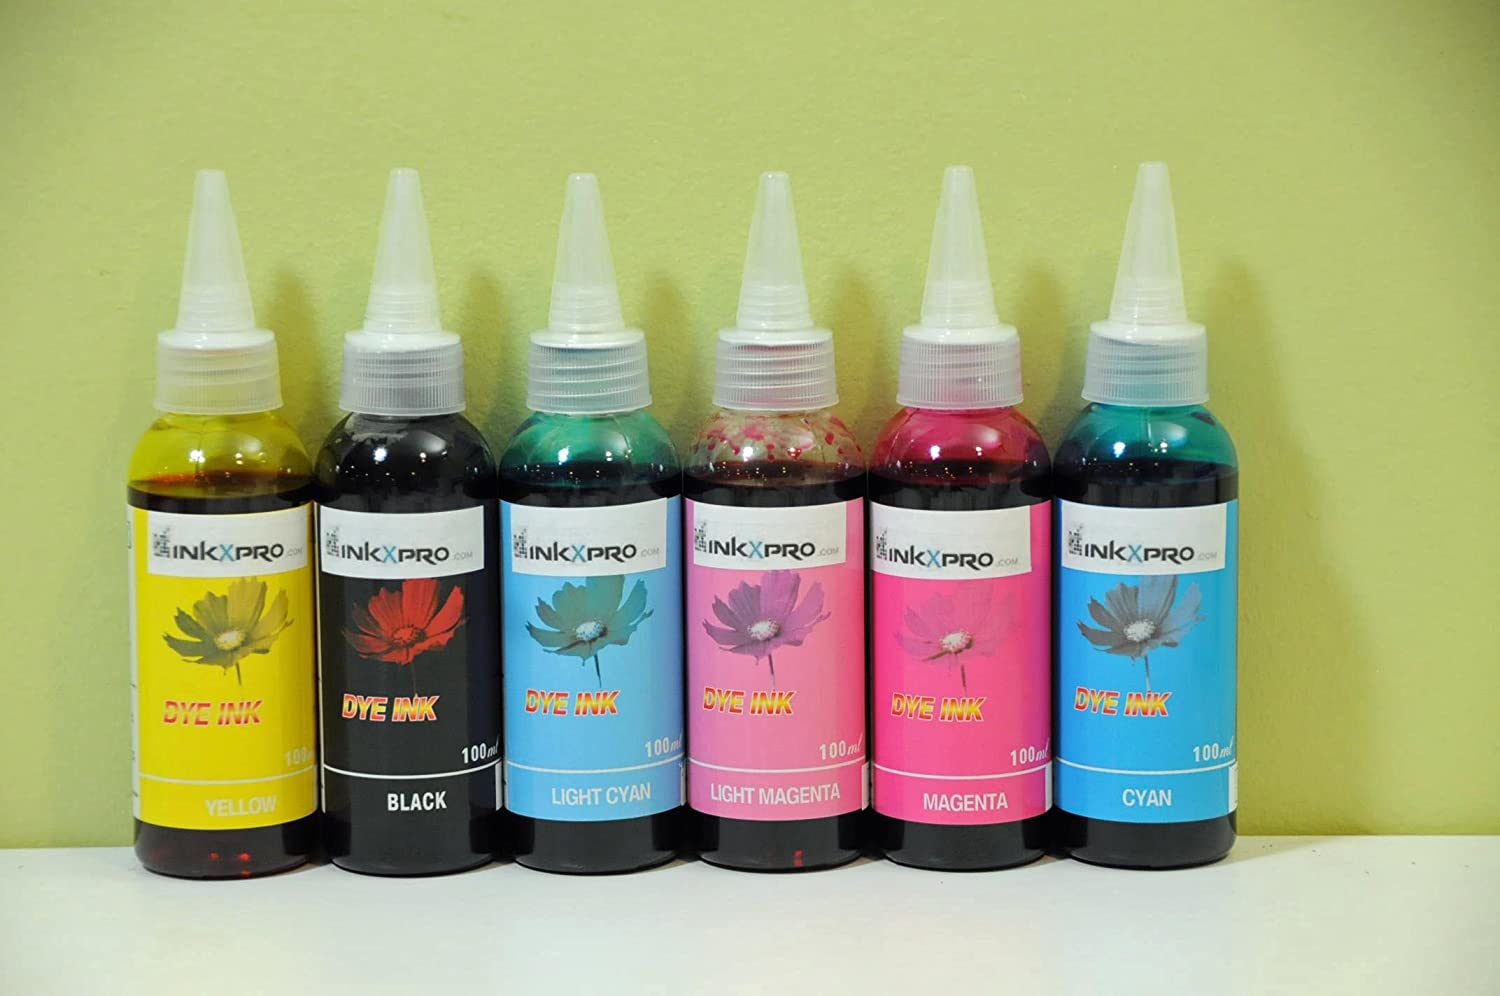 Amazon.com: inkxpro 600 ml Dye Ink Refill Set de alta ...